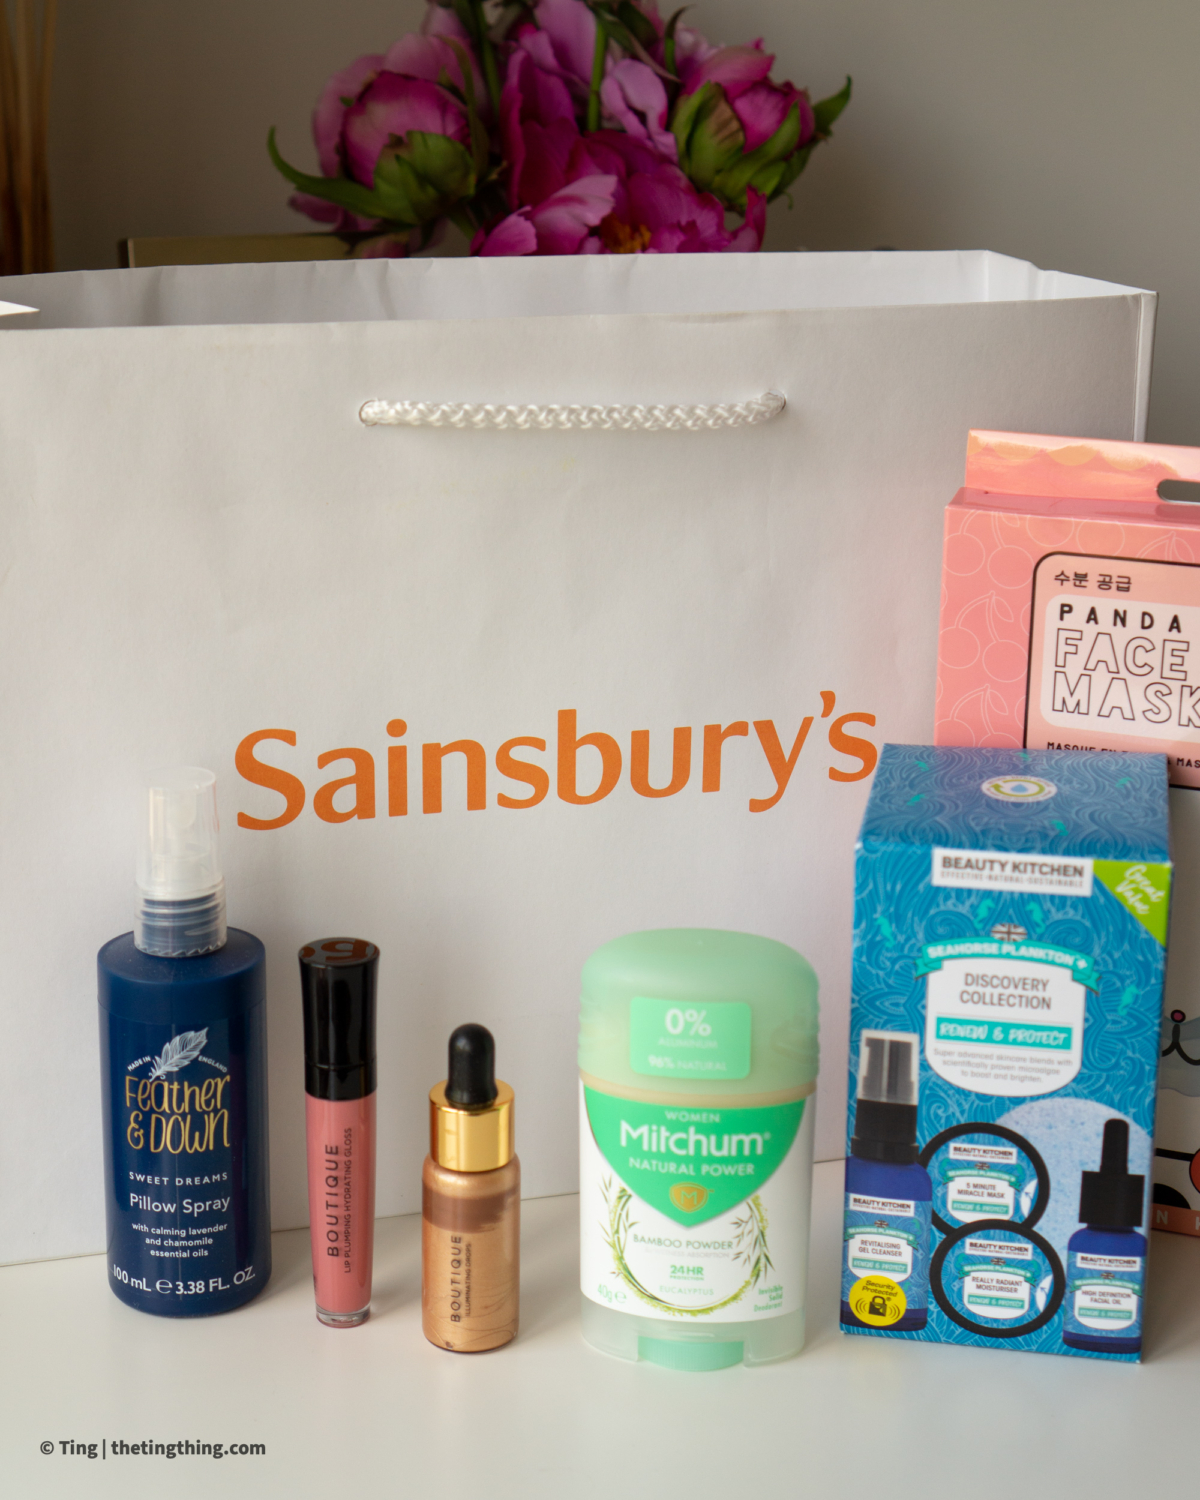 Sainsburys Beauty bag and beauty items lined up on a white desk